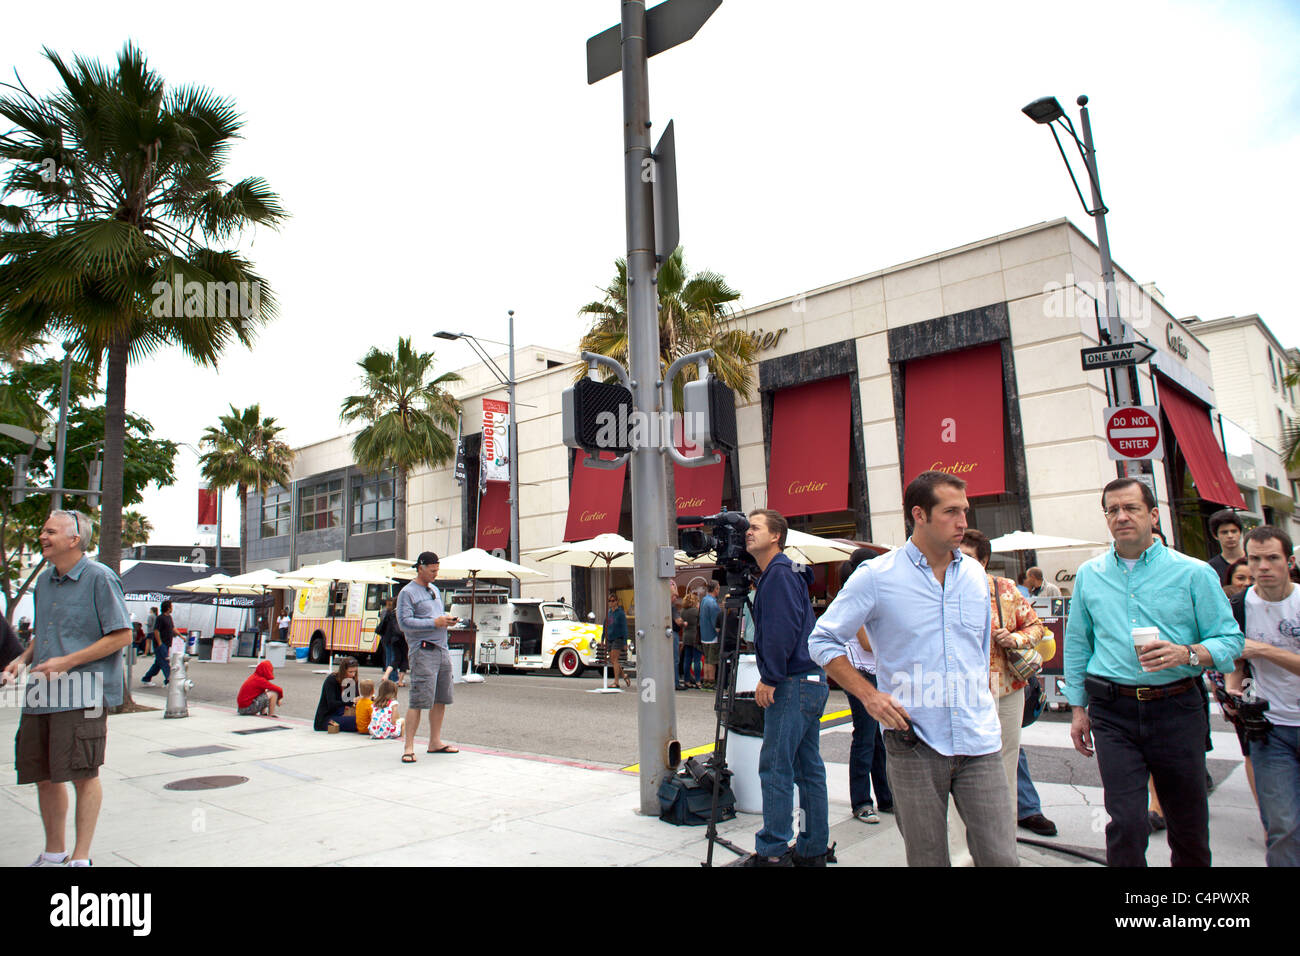 A crowd scene at the 2011 Rodeo Drive Concours with some of the invited food trucks in the background. Stock Photo